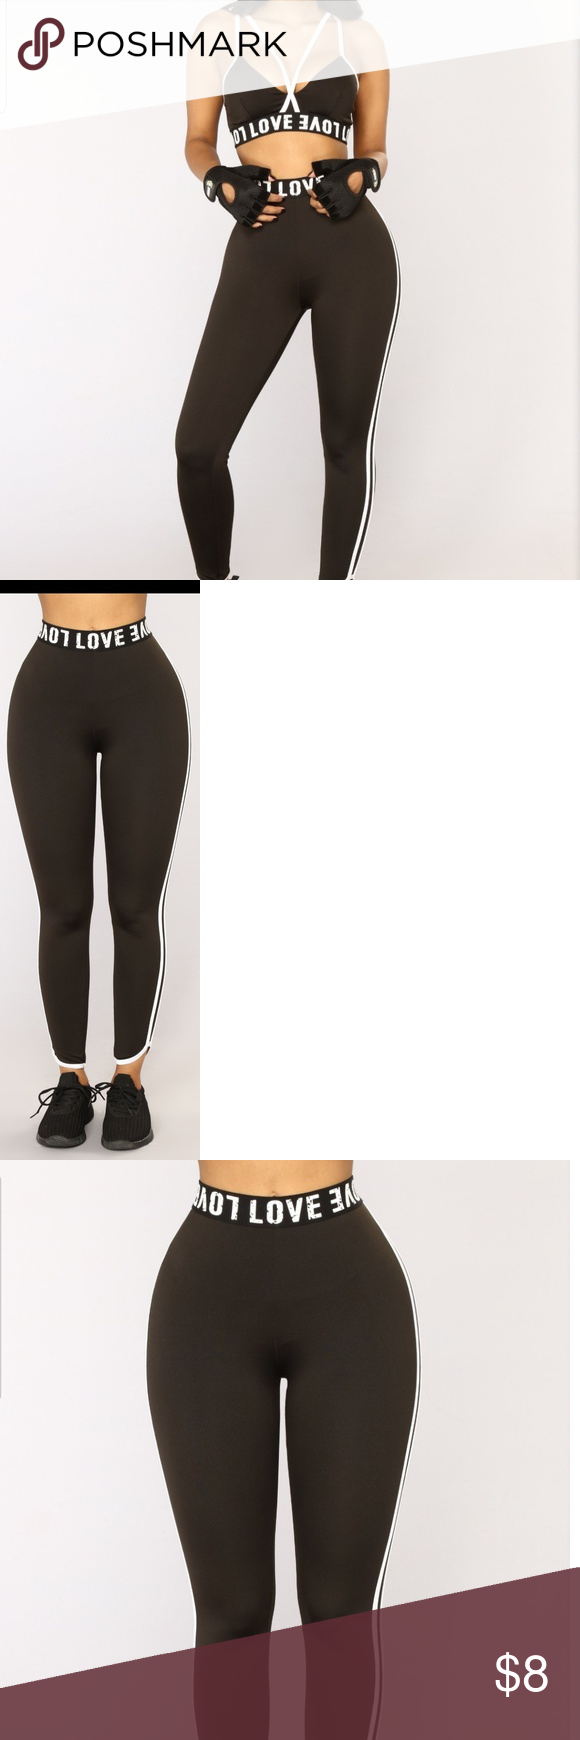 2a2870ec31af3 Love my double stripe active leggings -Large Size Large Fashion Nova Love  my double stripe active leggings. Black and white in color Waist band has  love ...